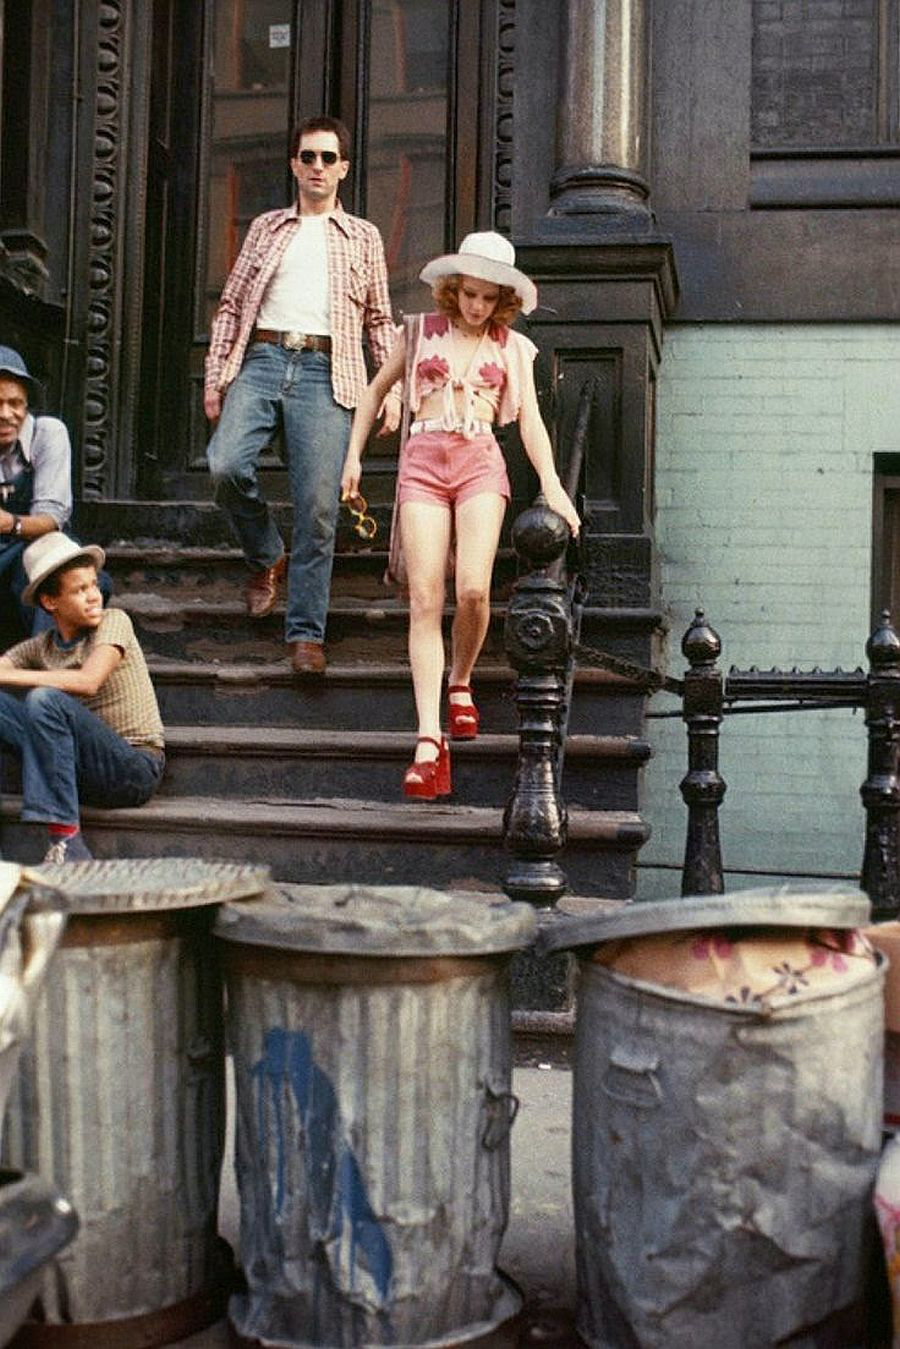 Robert De Niro and Jody Foster on the set of Taxi Driver